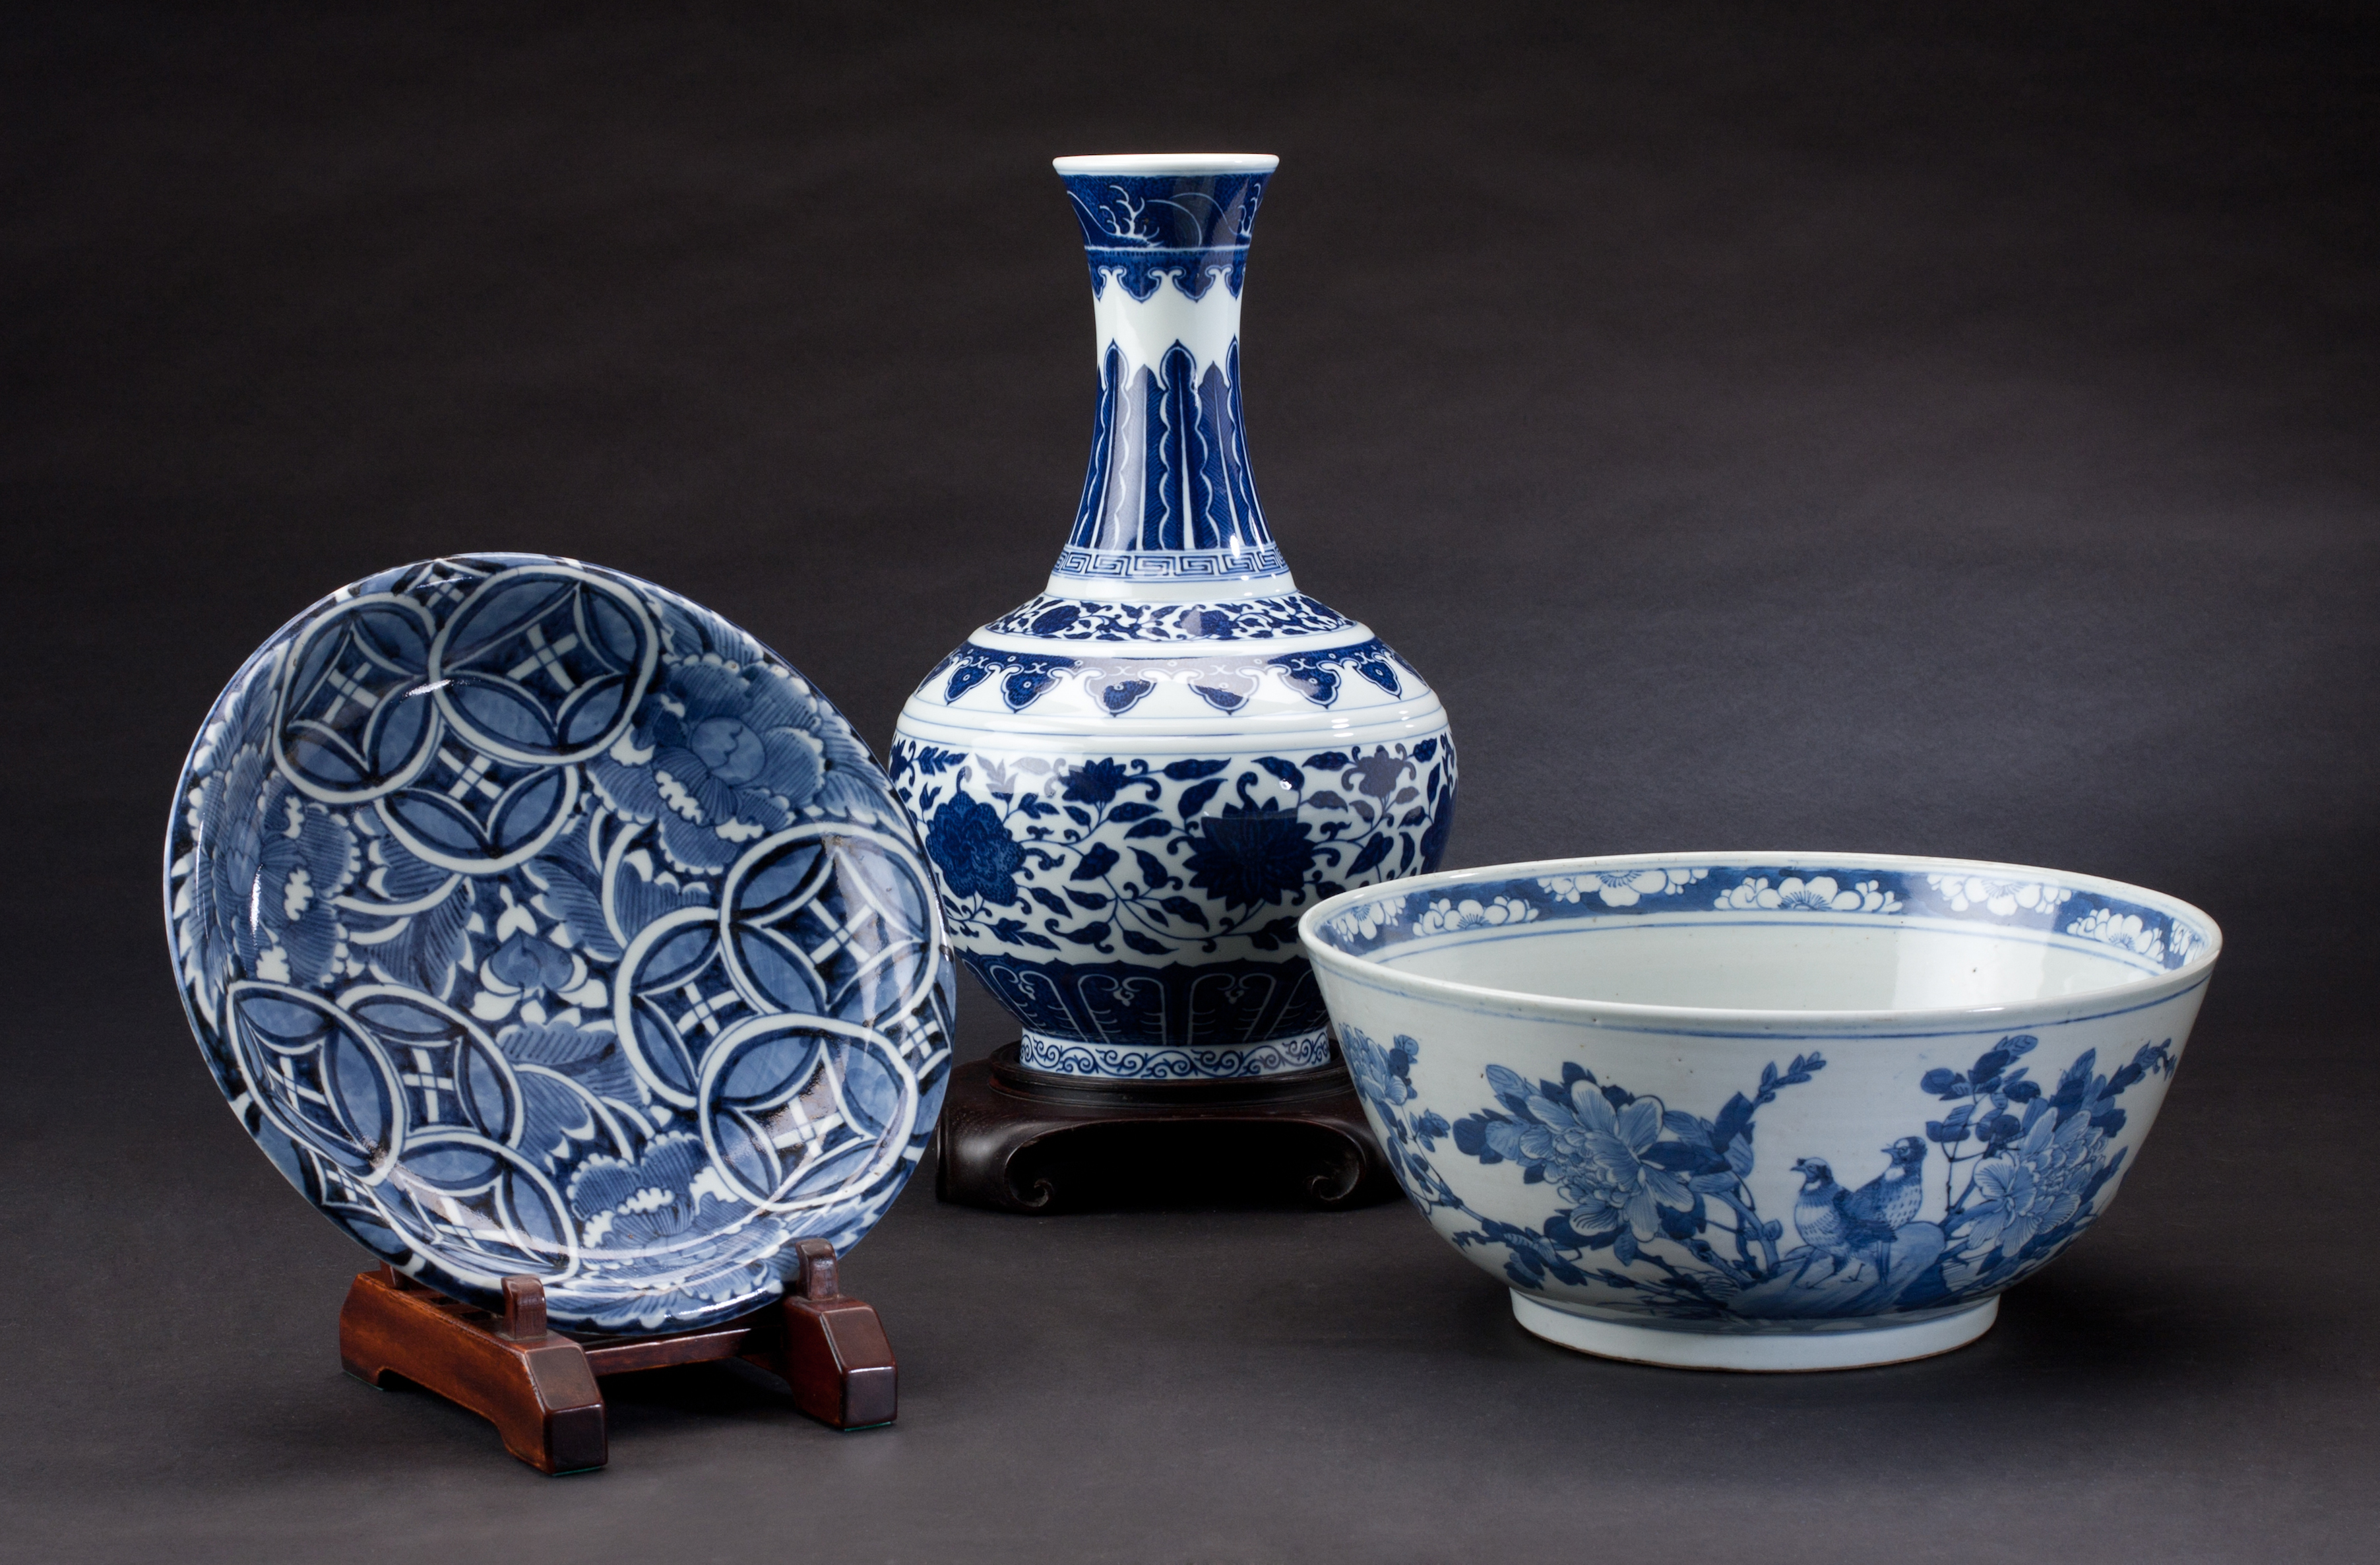 Chinese porcelain ware: a plate, a vase and a bowl.